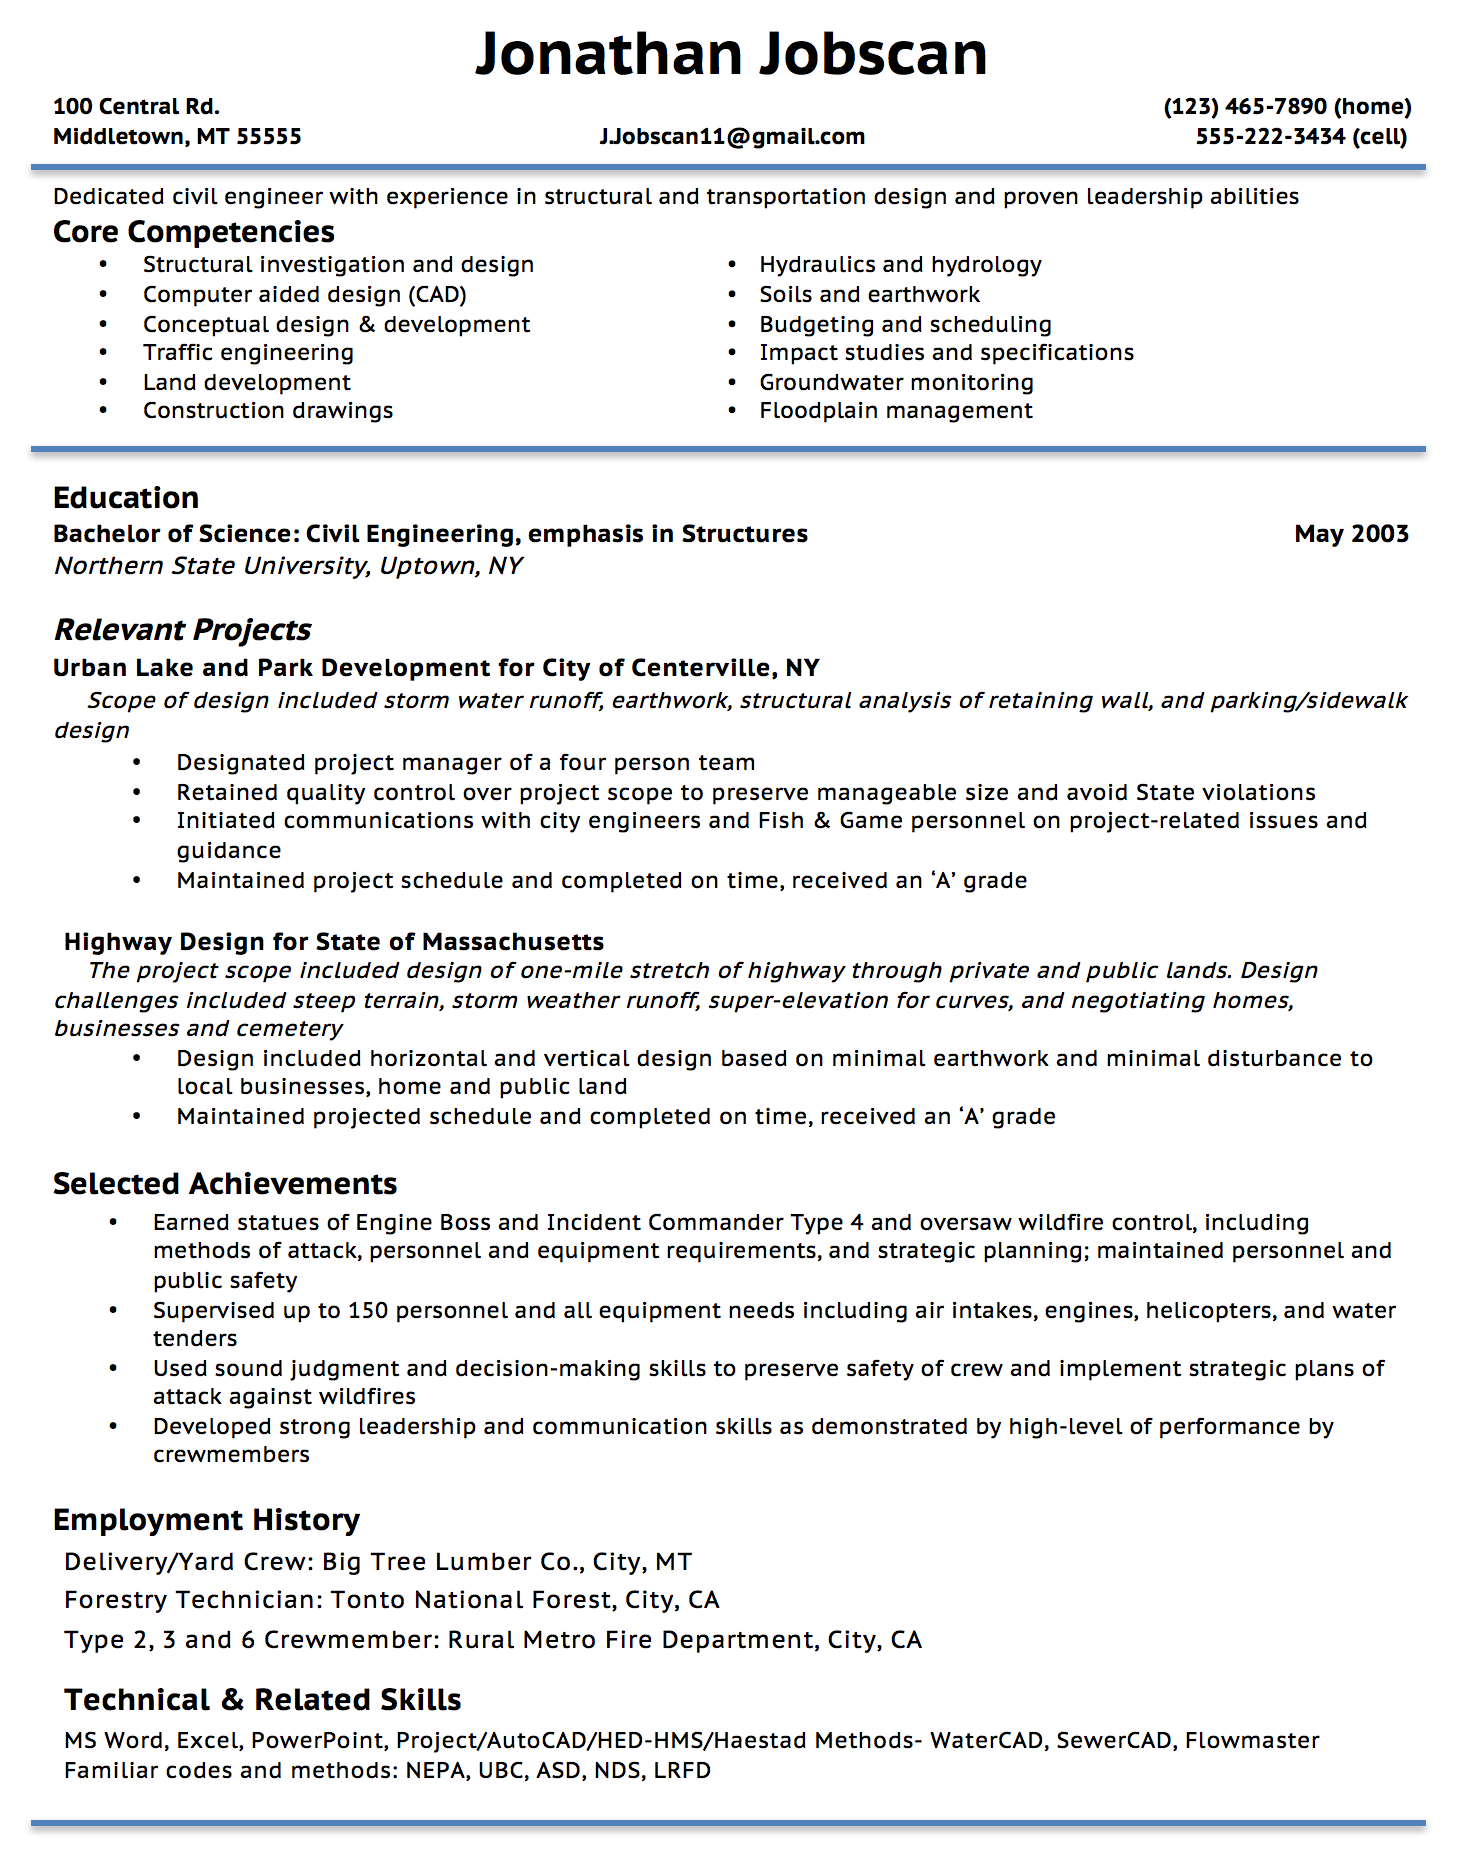 Opposenewapstandardsus  Fascinating Resume Writing Guide  Jobscan With Fetching Example Of A Functional Resume Format With Astounding Professional Resumes Examples Also Graphic Design Resume Sample In Addition Computer Science Resume Sample And List References On Resume As Well As Free Resume Creator Online Additionally General Resume Cover Letter Examples From Jobscanco With Opposenewapstandardsus  Fetching Resume Writing Guide  Jobscan With Astounding Example Of A Functional Resume Format And Fascinating Professional Resumes Examples Also Graphic Design Resume Sample In Addition Computer Science Resume Sample From Jobscanco